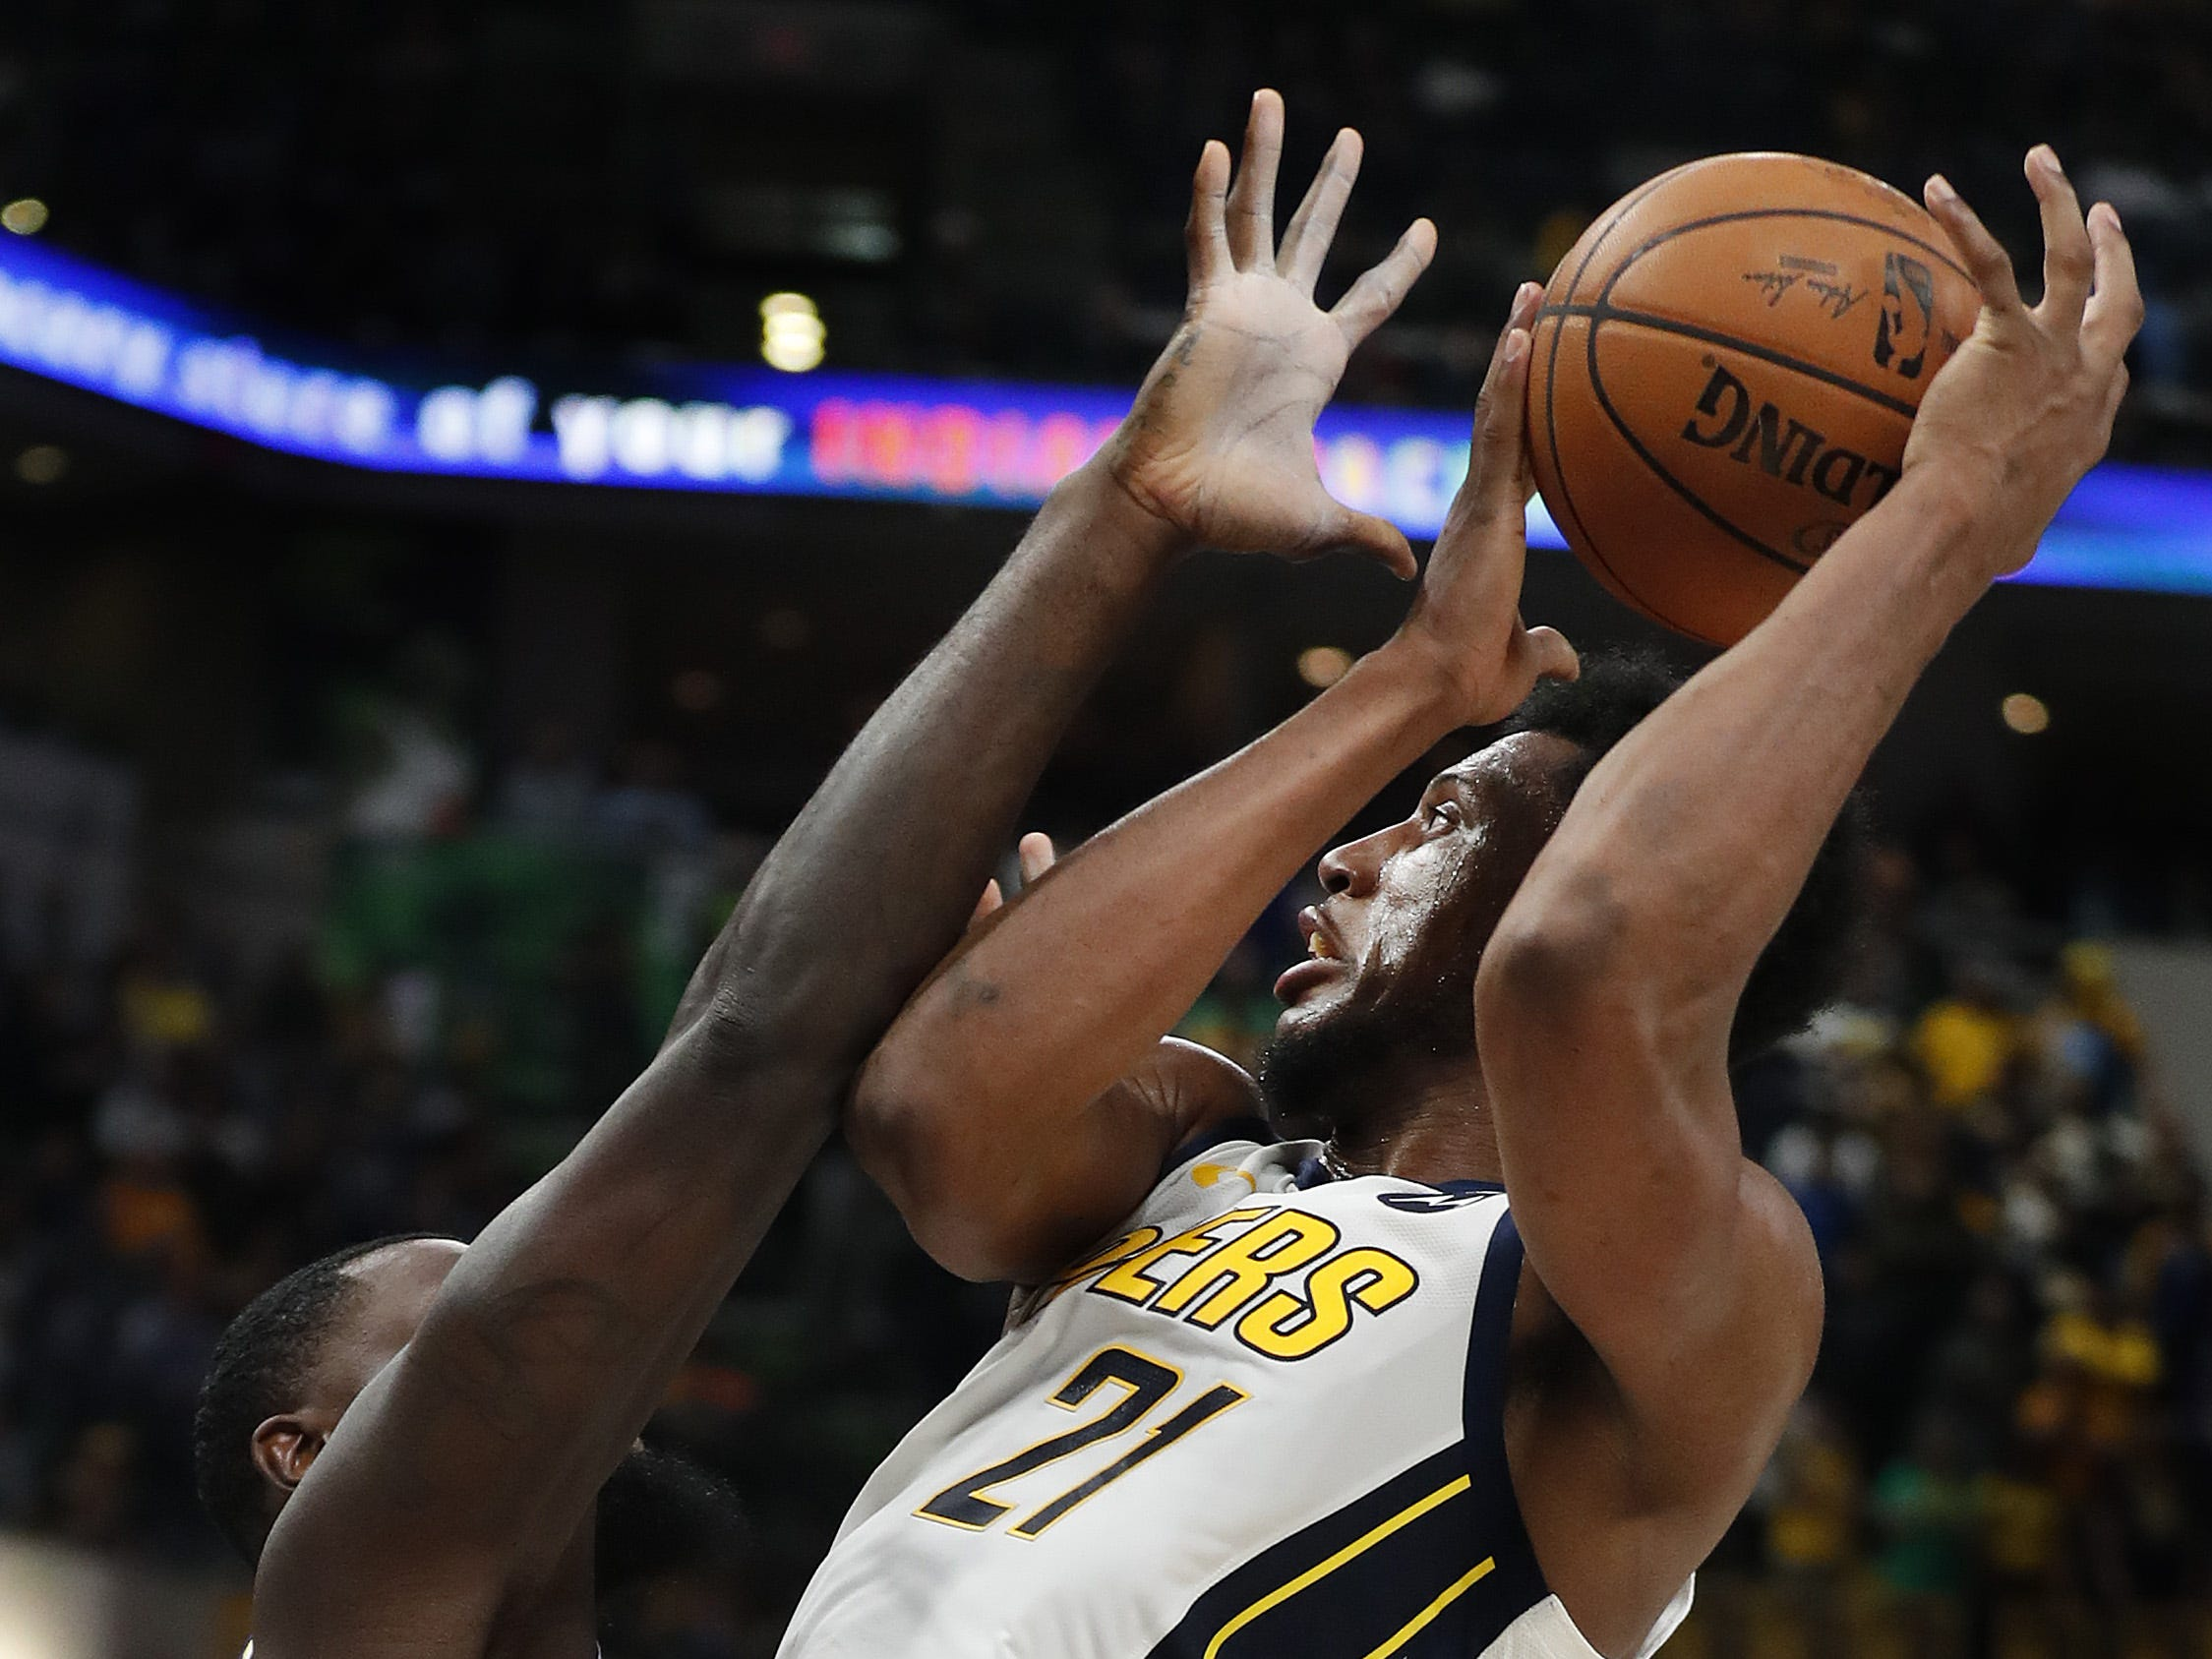 Indiana Pacers forward Thaddeus Young (21) shoots over Los Angeles Lakers guard Lance Stephenson (6) in the second half of their game at Bankers Life Fieldhouse on Tuesday, Feb. 5, 2019.